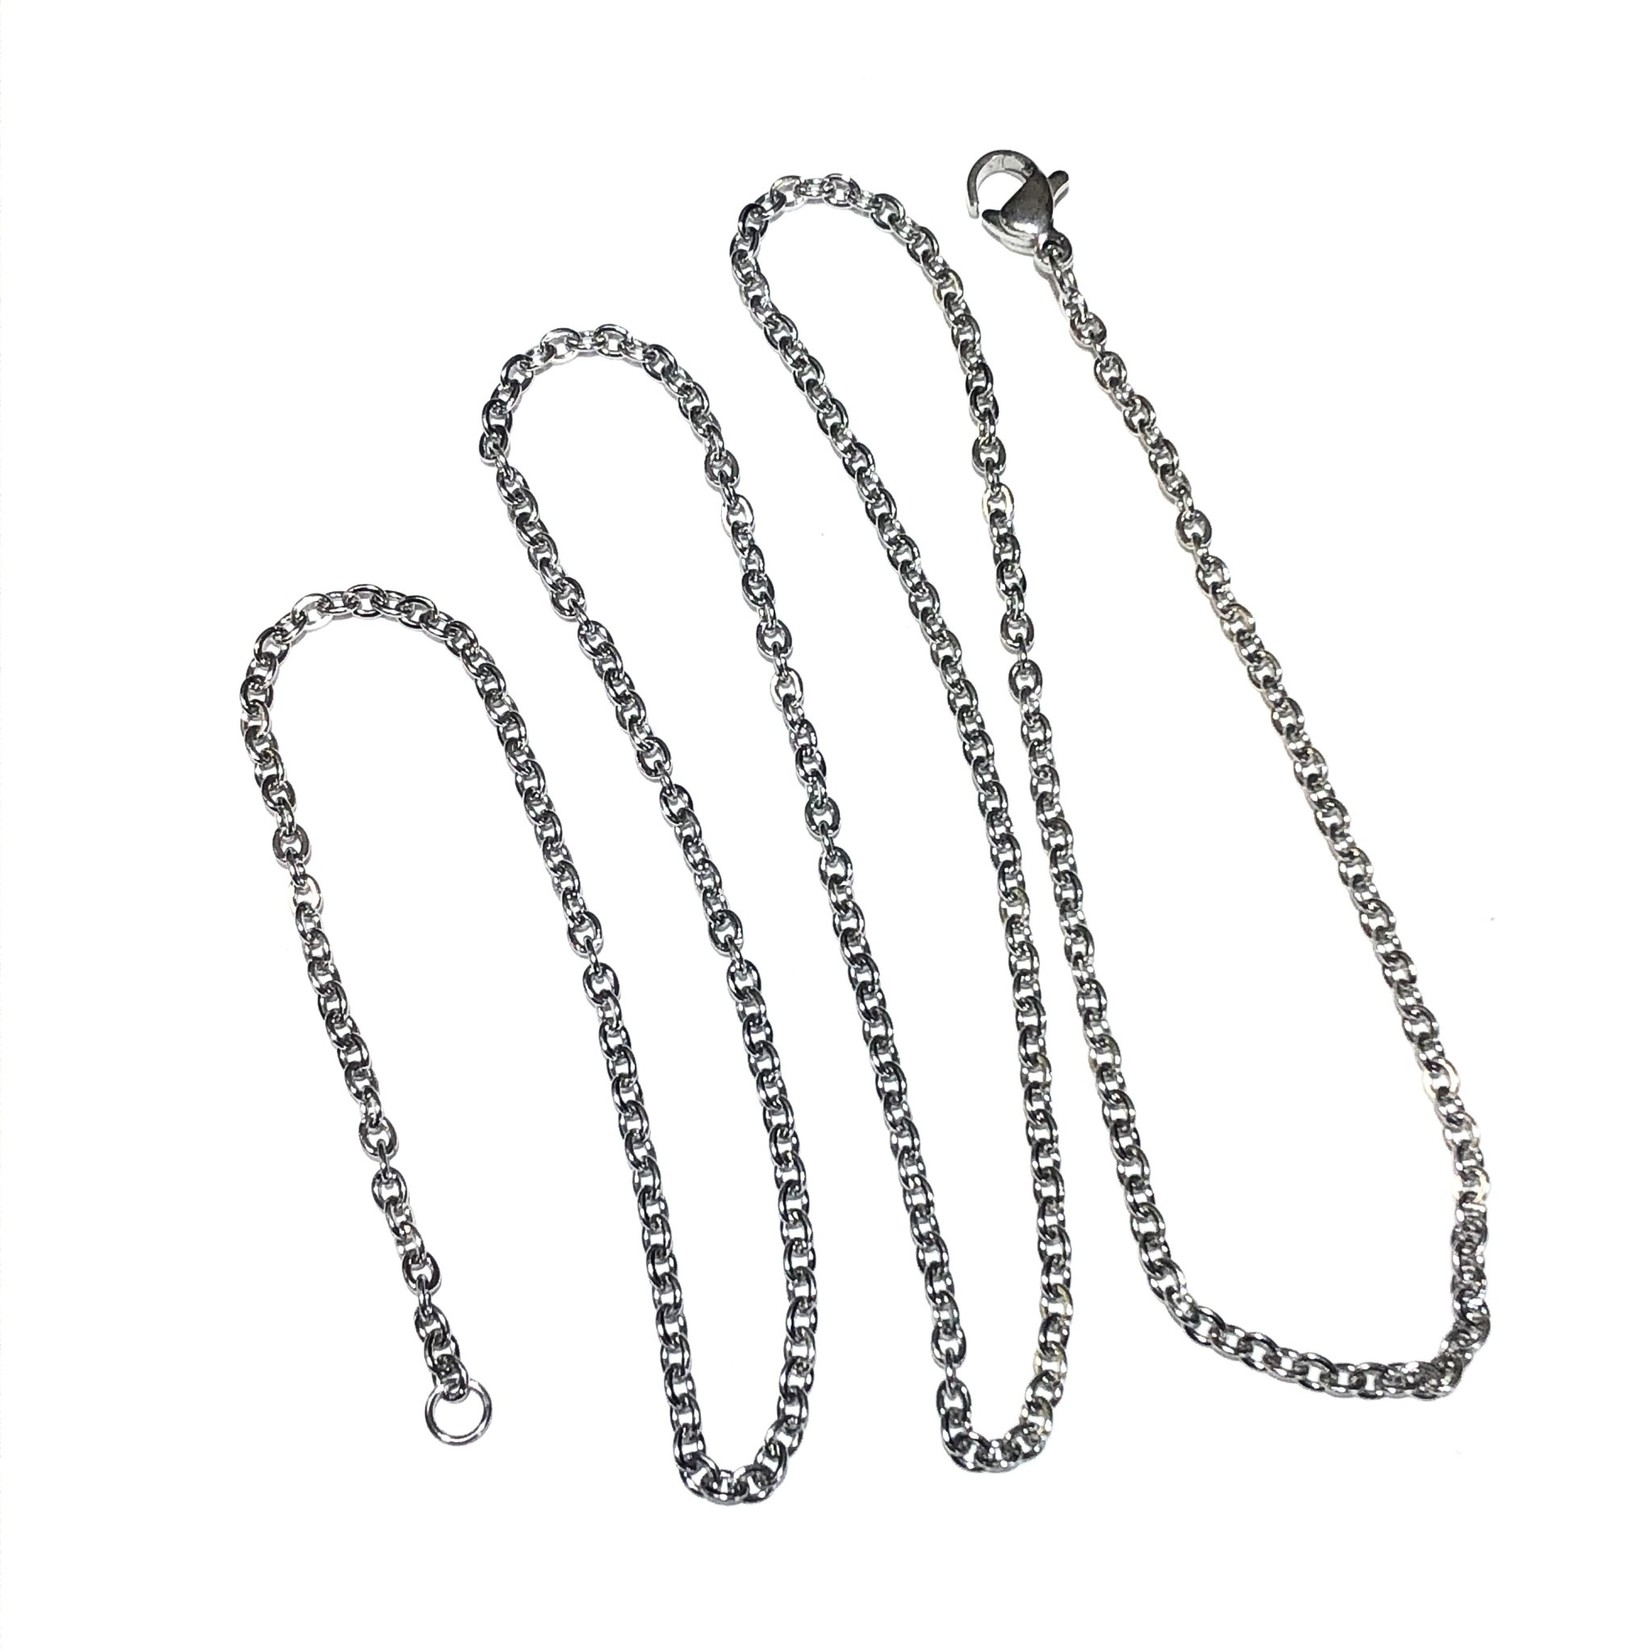 CHAIN Stainless Steel Cable 2.3mm 24 inch